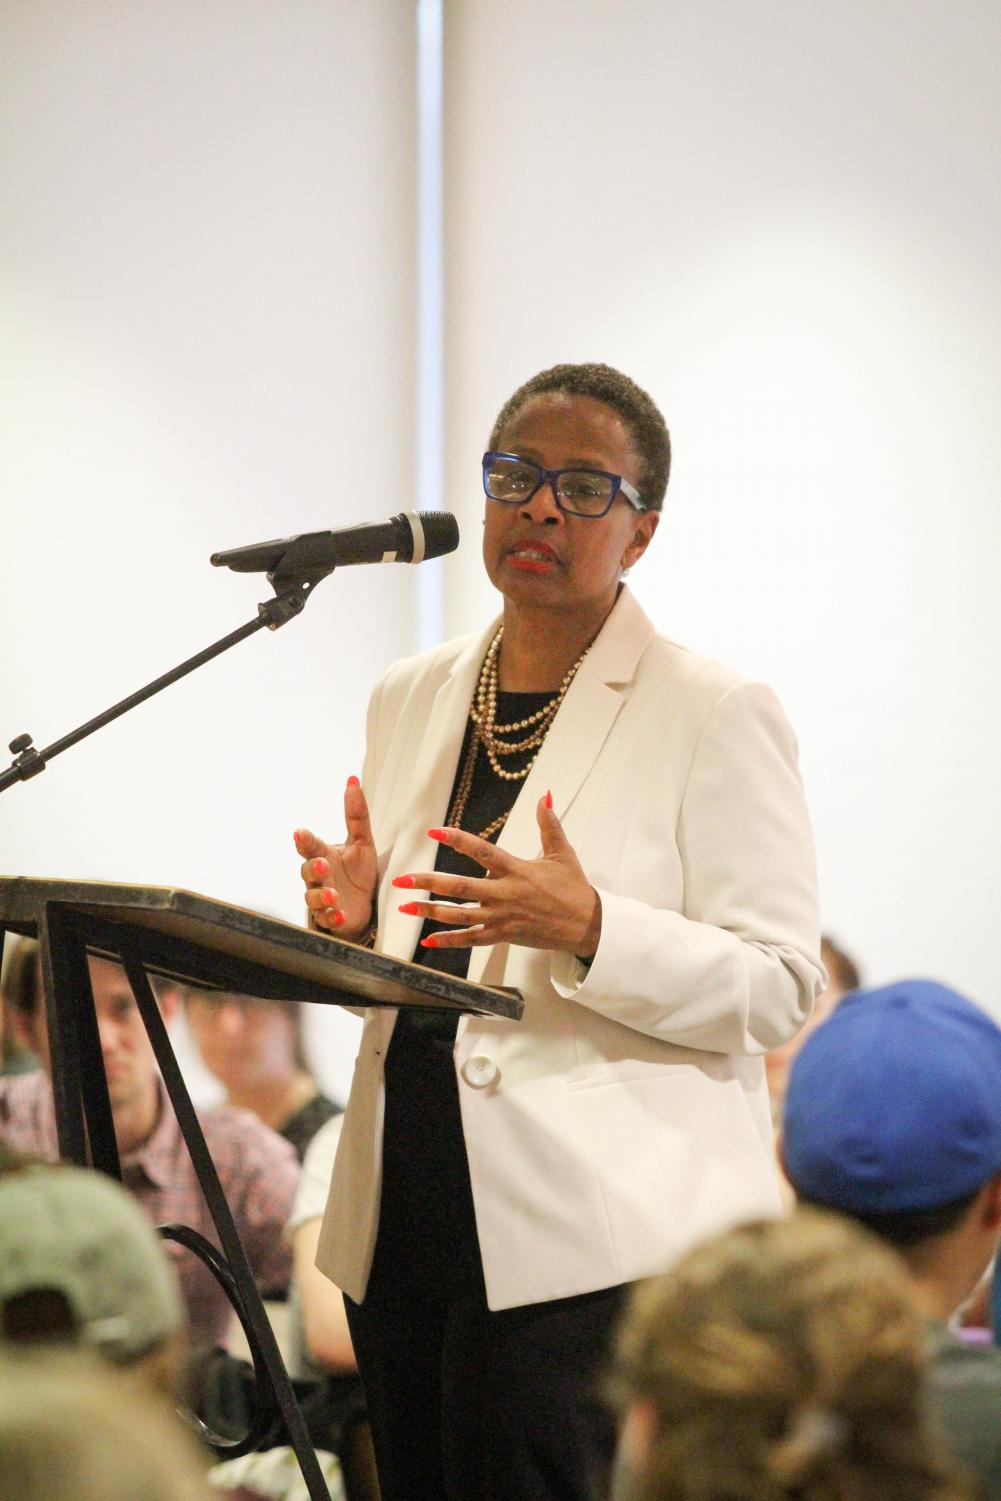 Interim Dean for Institutional Equity and Inclusion Lisa Scott helped organize the community response to various hate incidents last year.